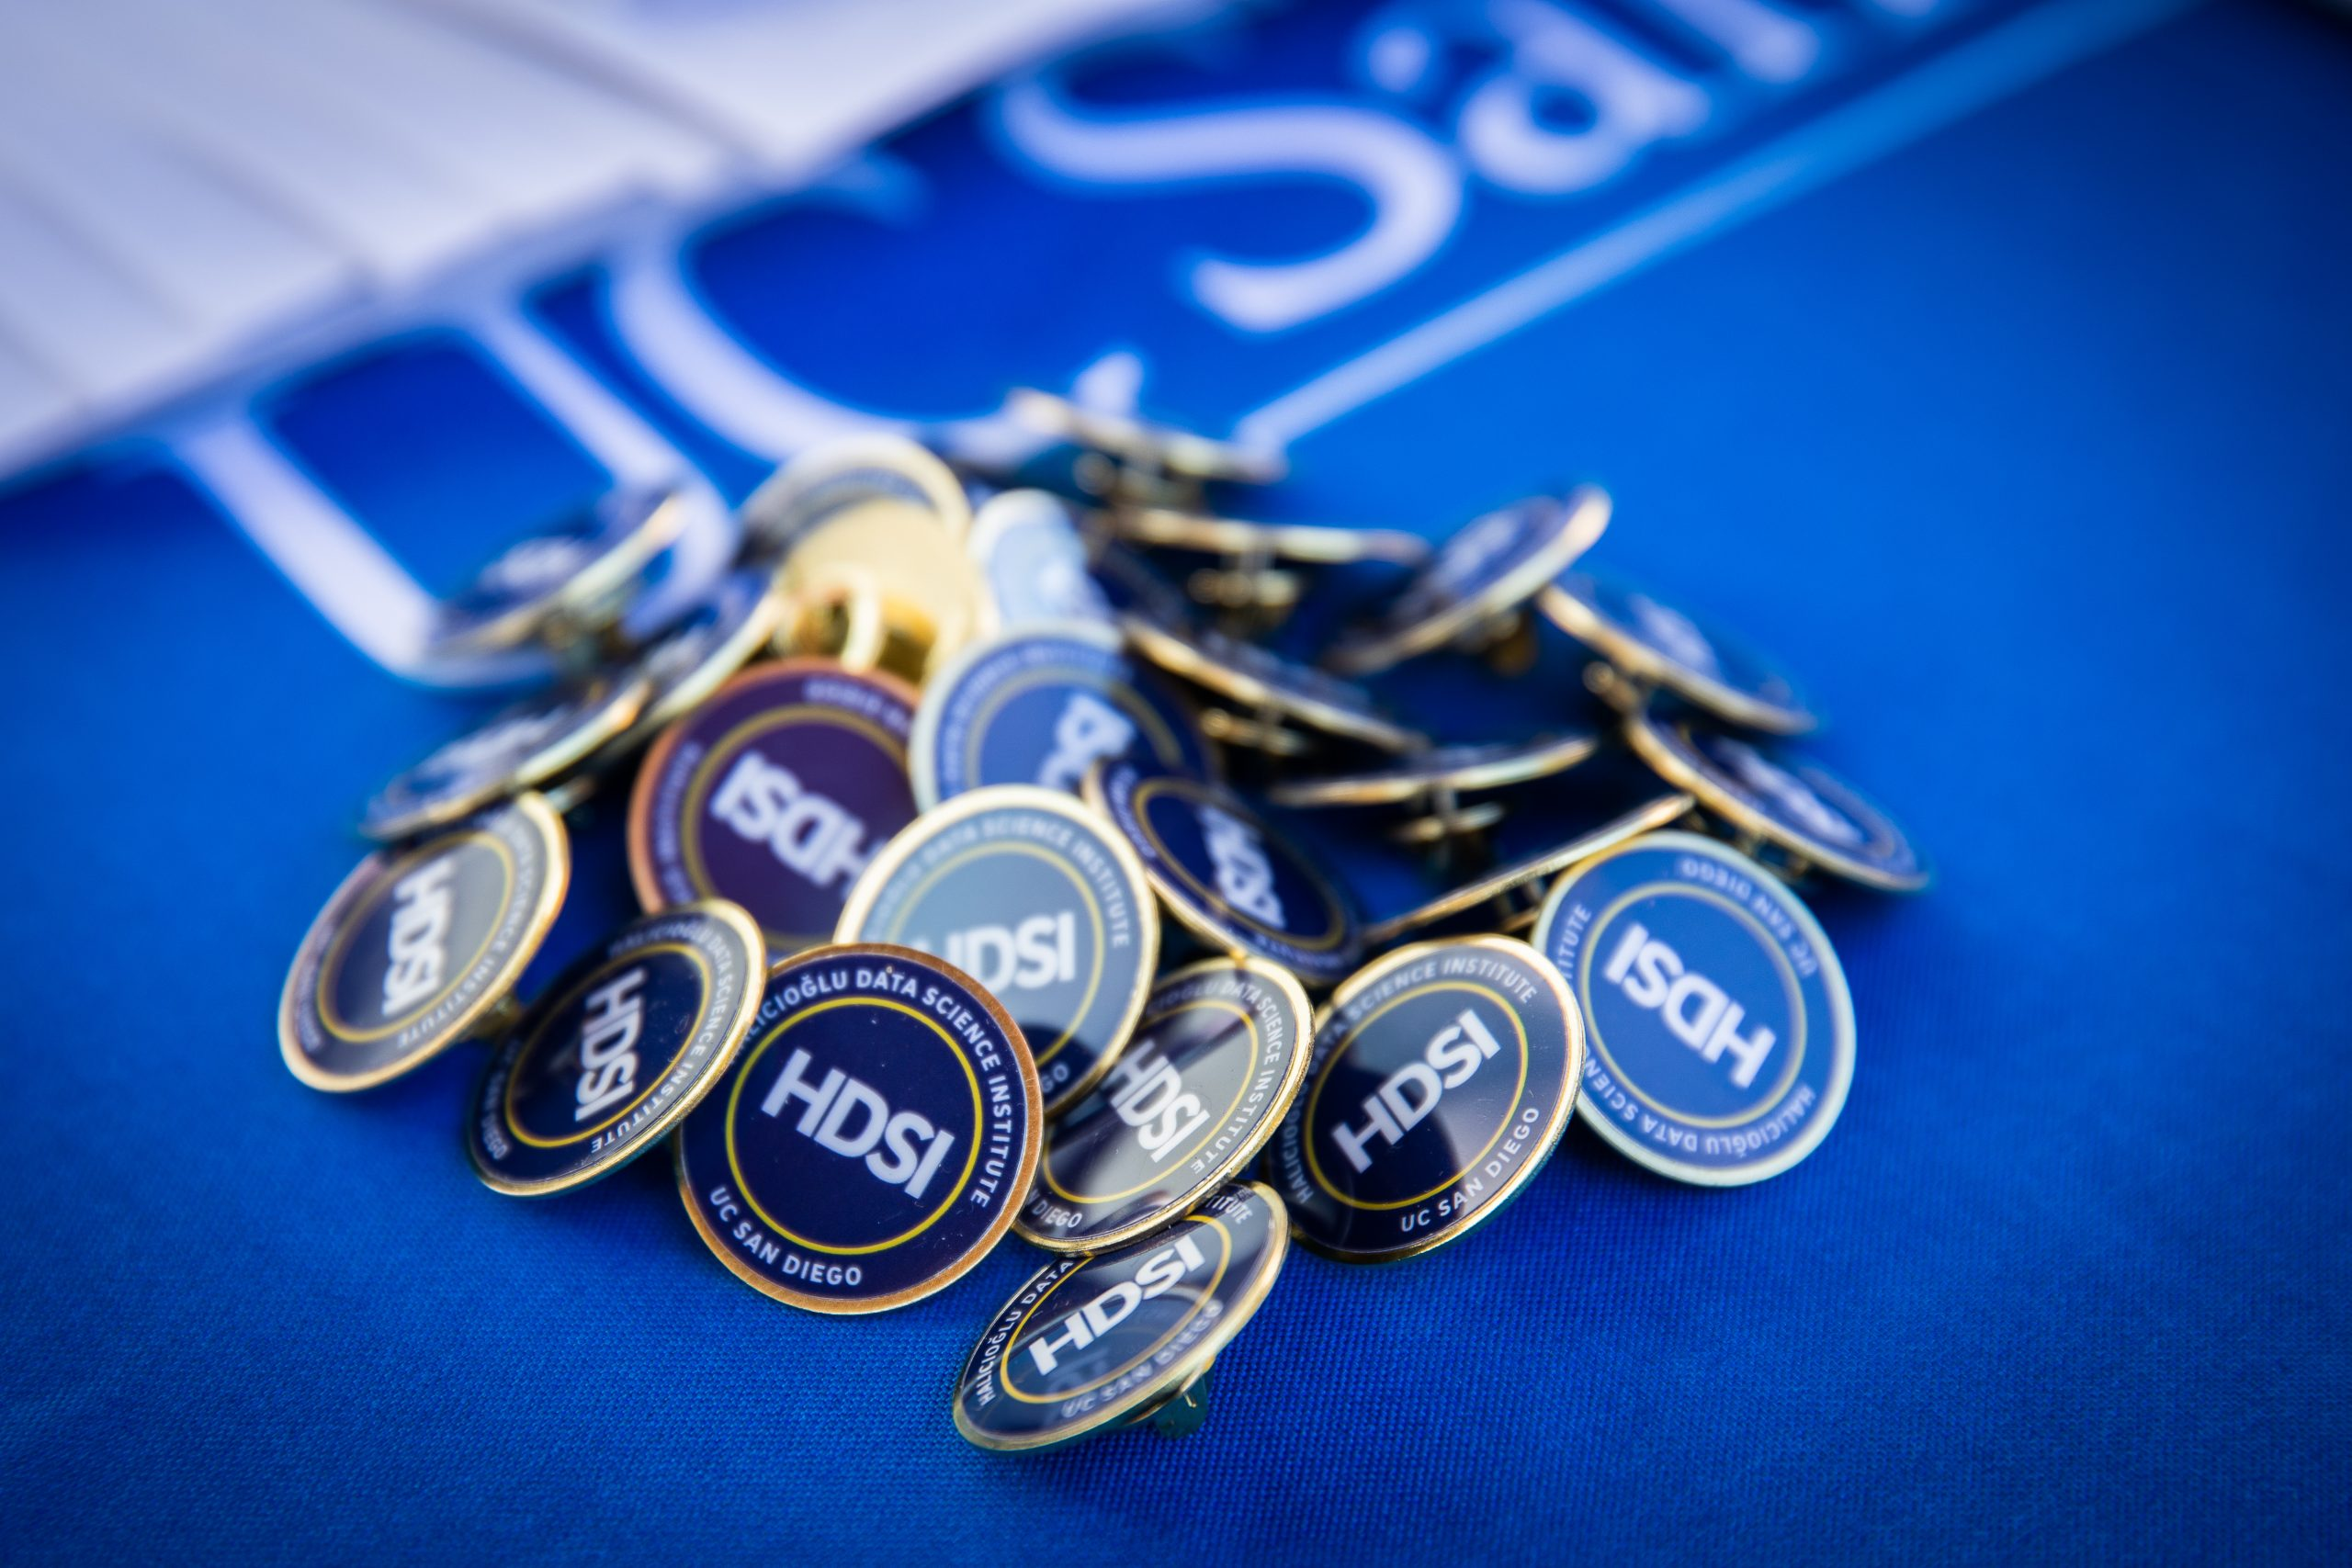 Photo of HDSI Lapel Buttons